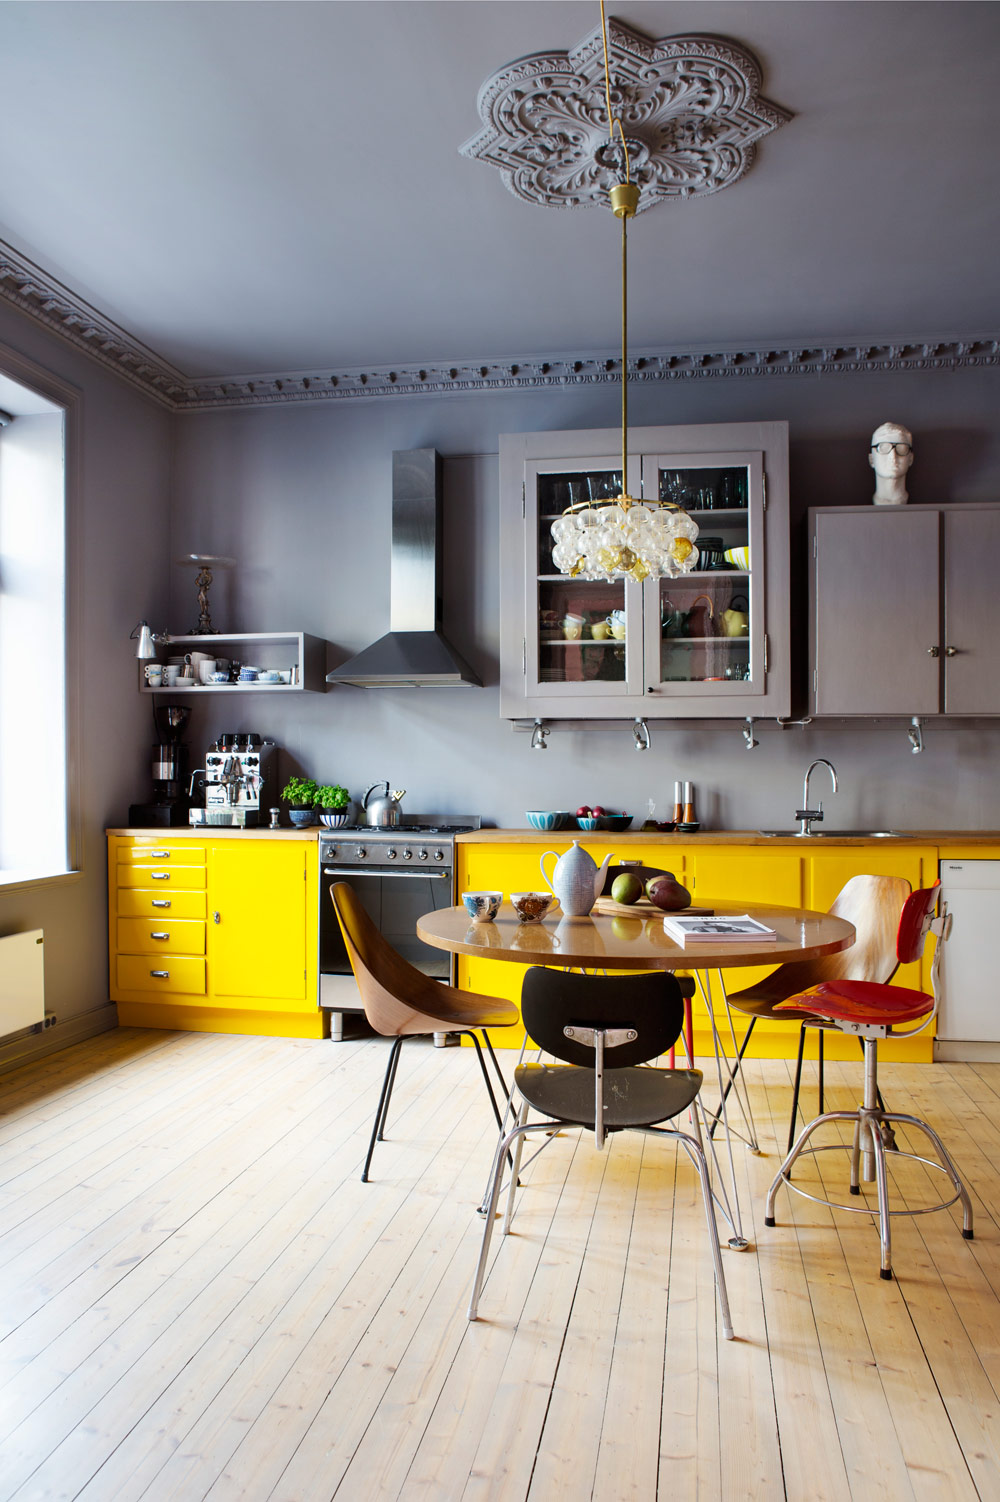 Colorful Kitchen With Yellow Cabinet Against Gray Walls